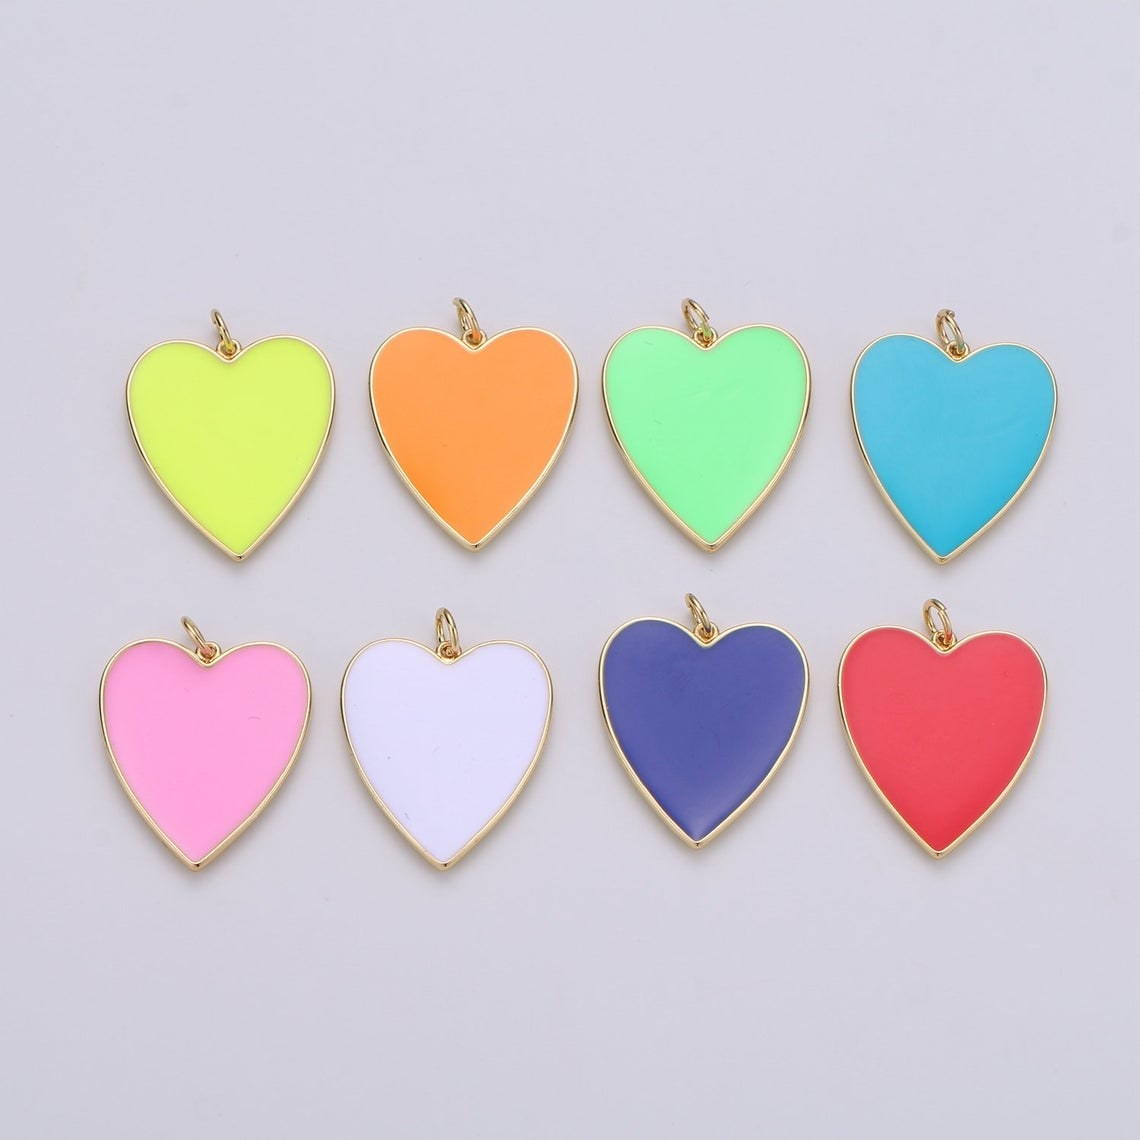 heart charms in various colors with gold colored backs